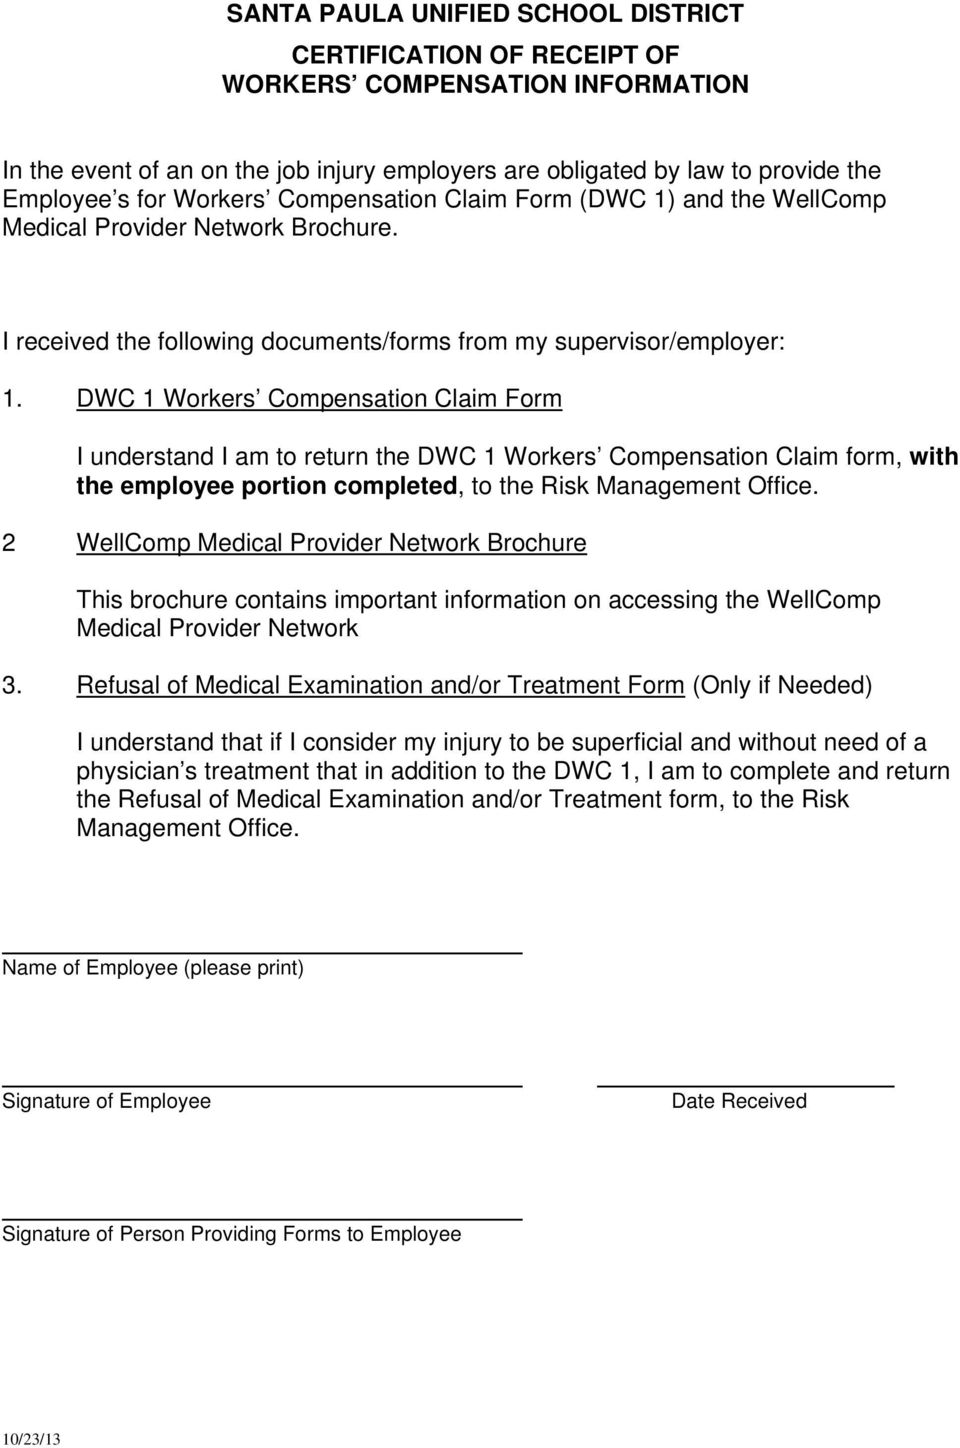 DWC 1 Workers Compensation Claim Form I understand I am to return the DWC 1 Workers Compensation Claim form, with the employee portion completed, to the Risk Management Office.